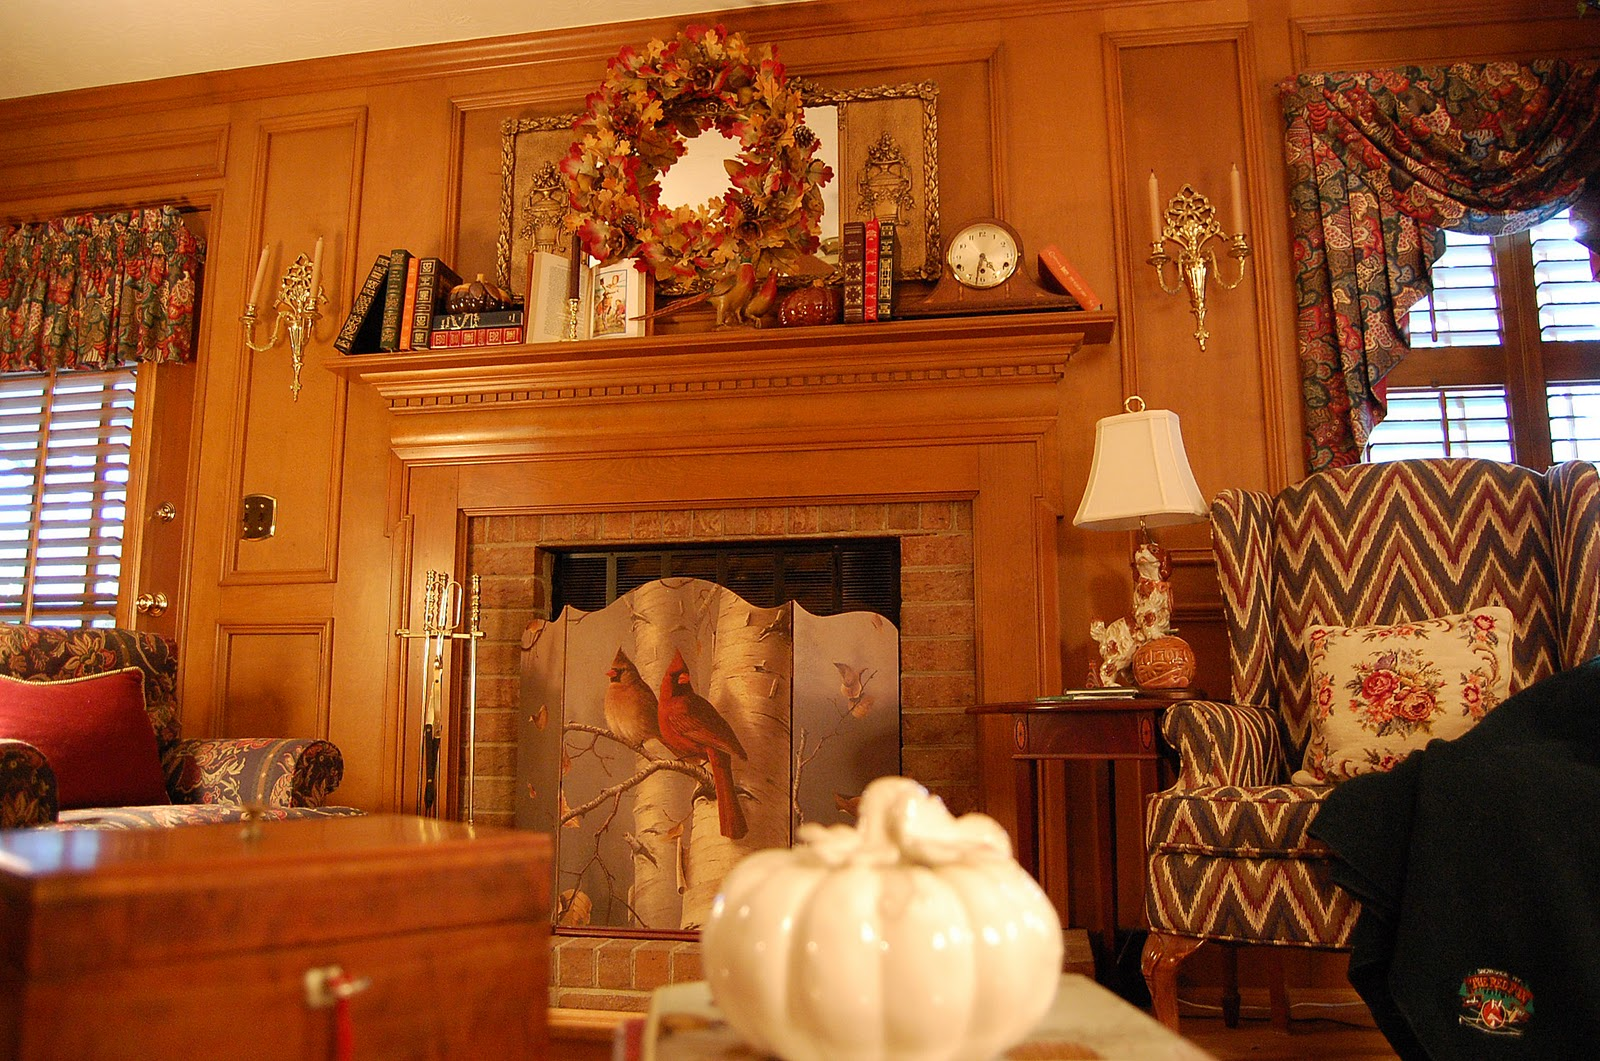 Antique Mantel Clocks >> Decorate a Fireplace Mantel for Fall or Autumn with Books ...